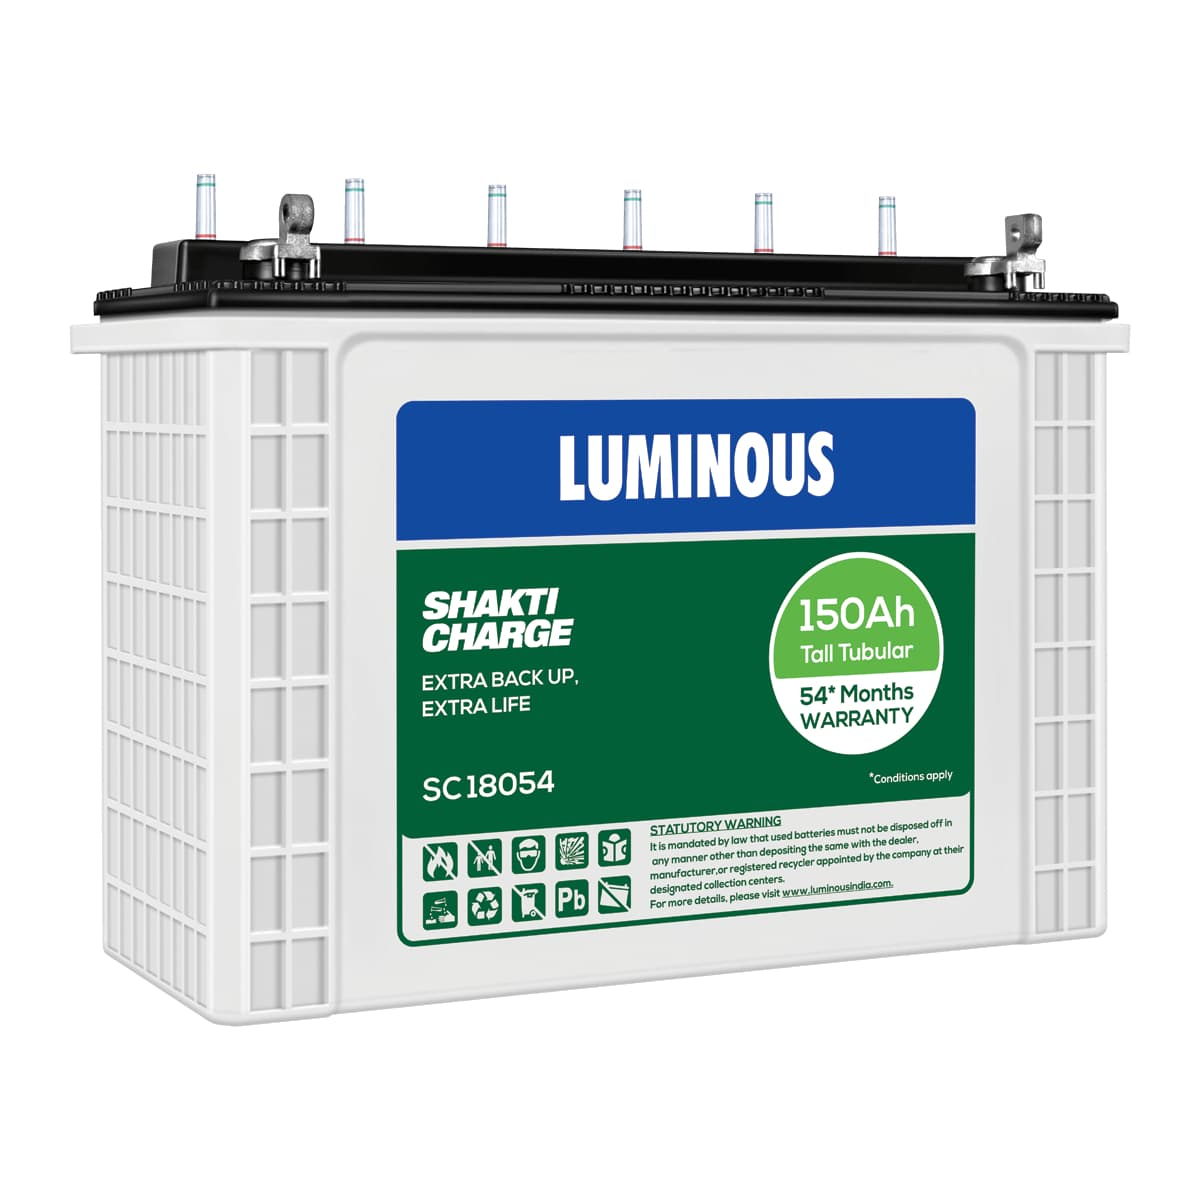 Luminous Shakti Charge SC18054 150AH Smart Tall Tubular Battery